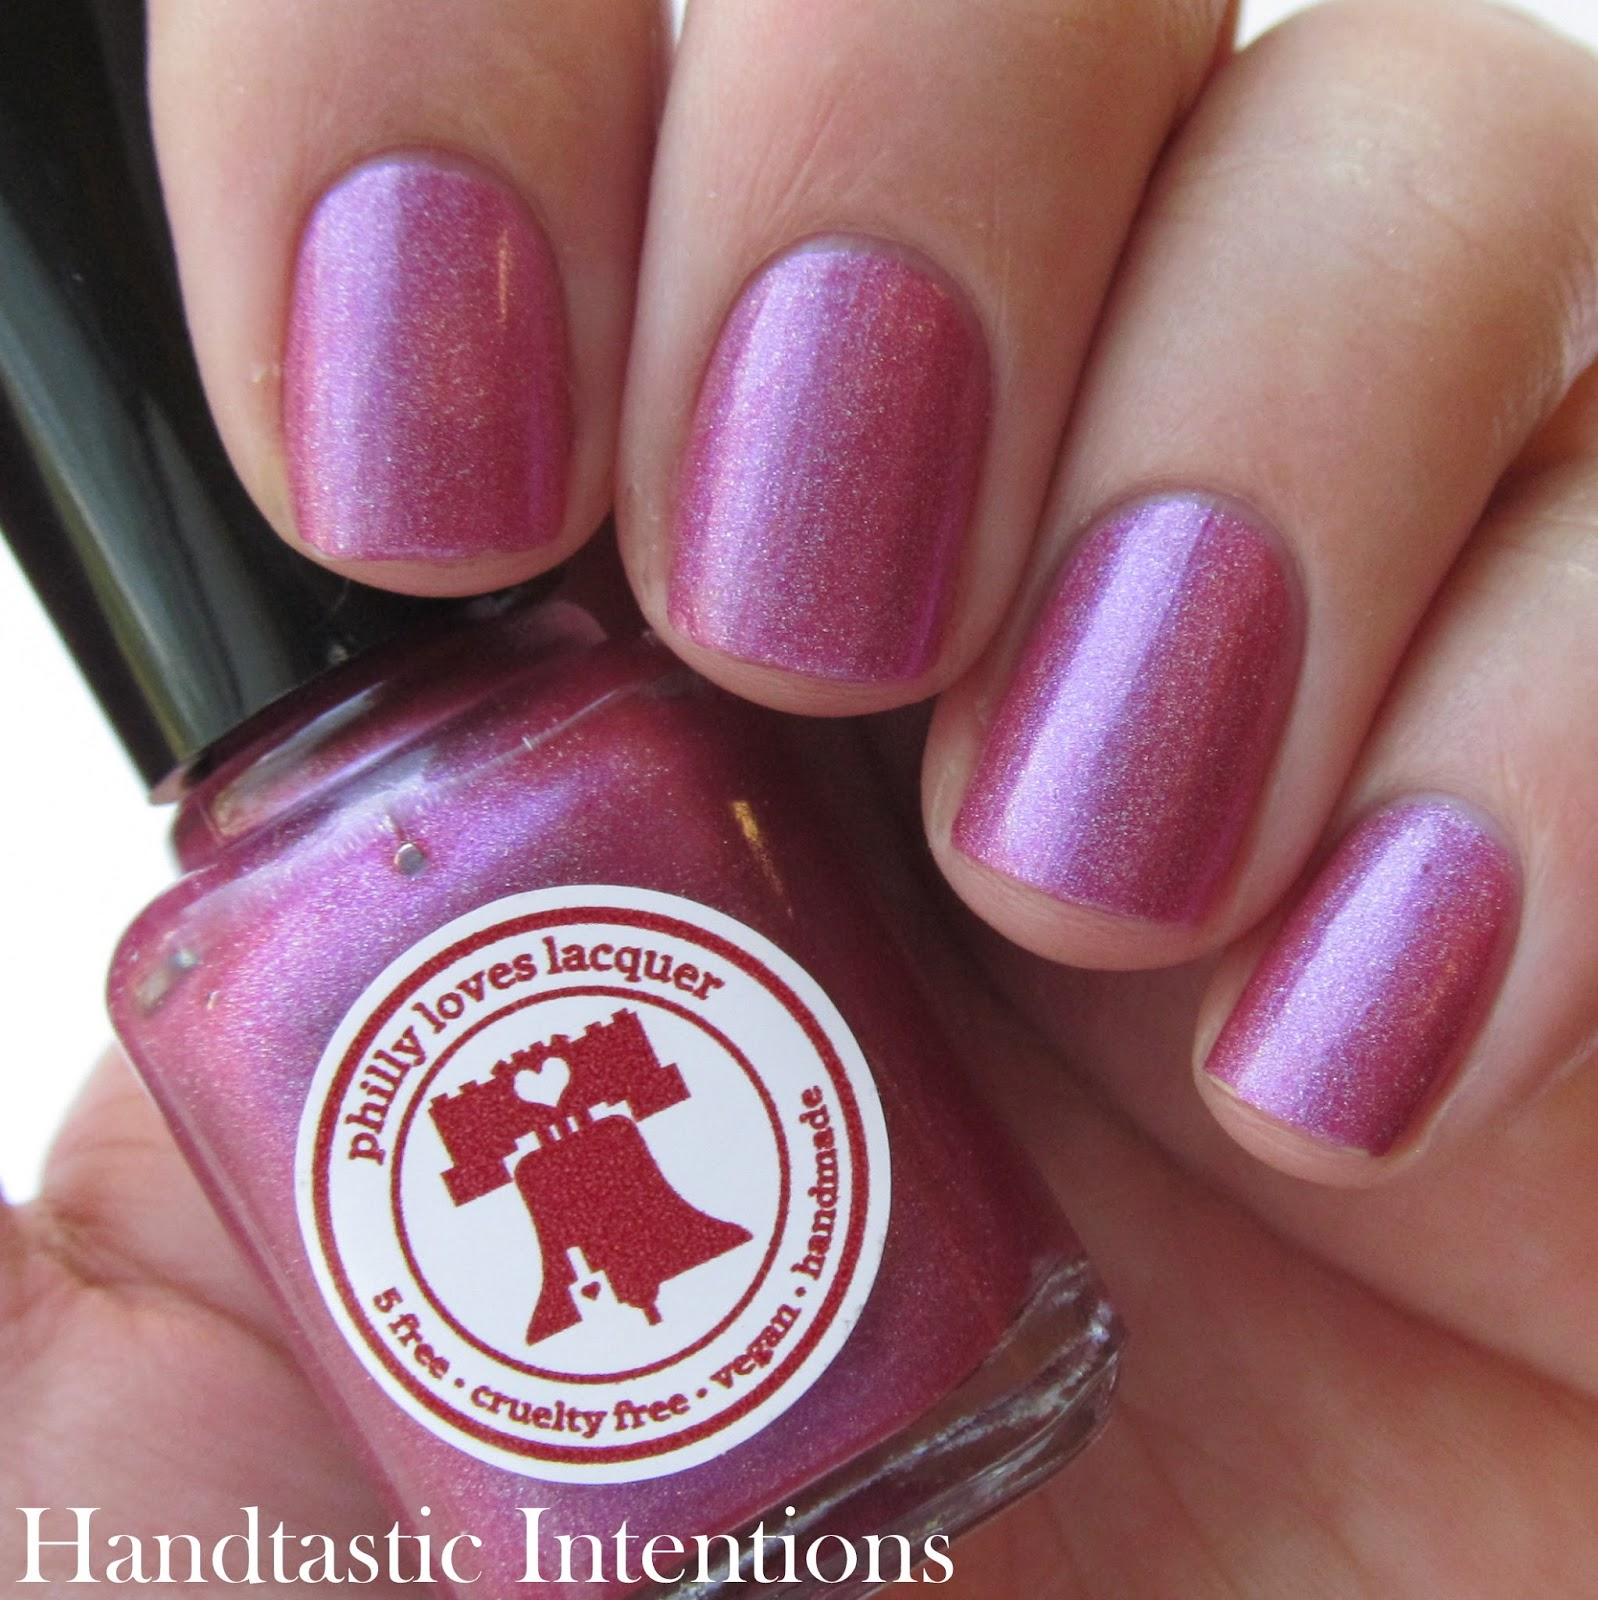 Philly-Loves-Lacquer-Field-Dressed-a-Cat-Swatch